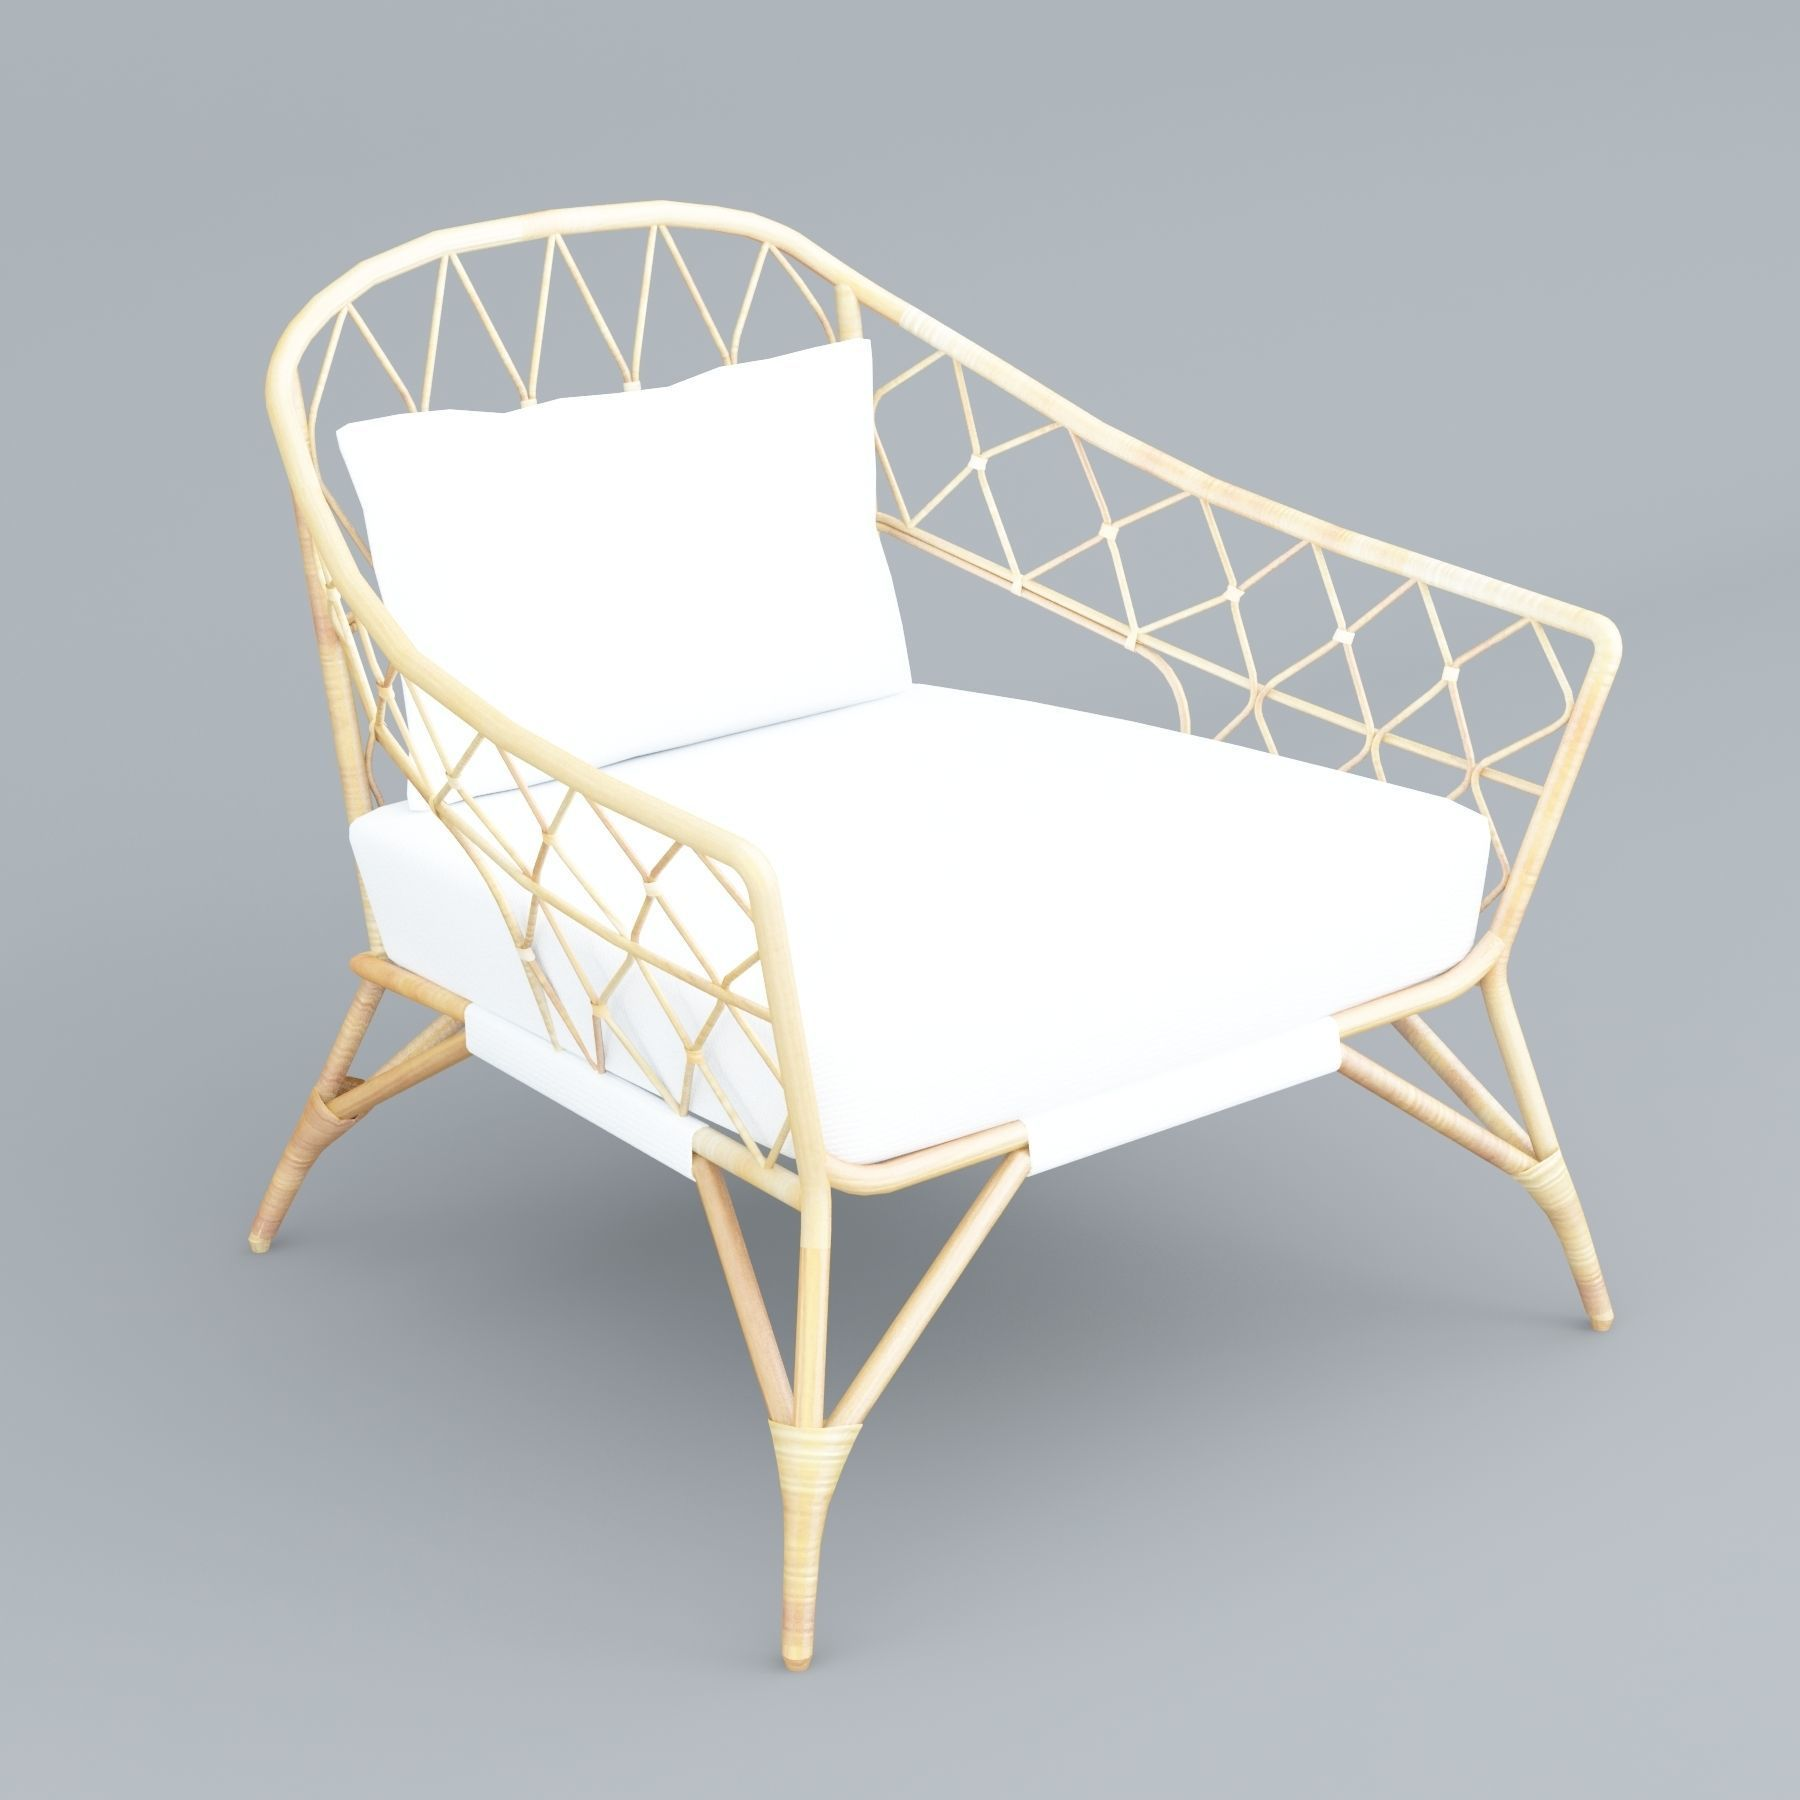 Excellent Stockholm Ikea Rattan Chair 3D Model Gmtry Best Dining Table And Chair Ideas Images Gmtryco